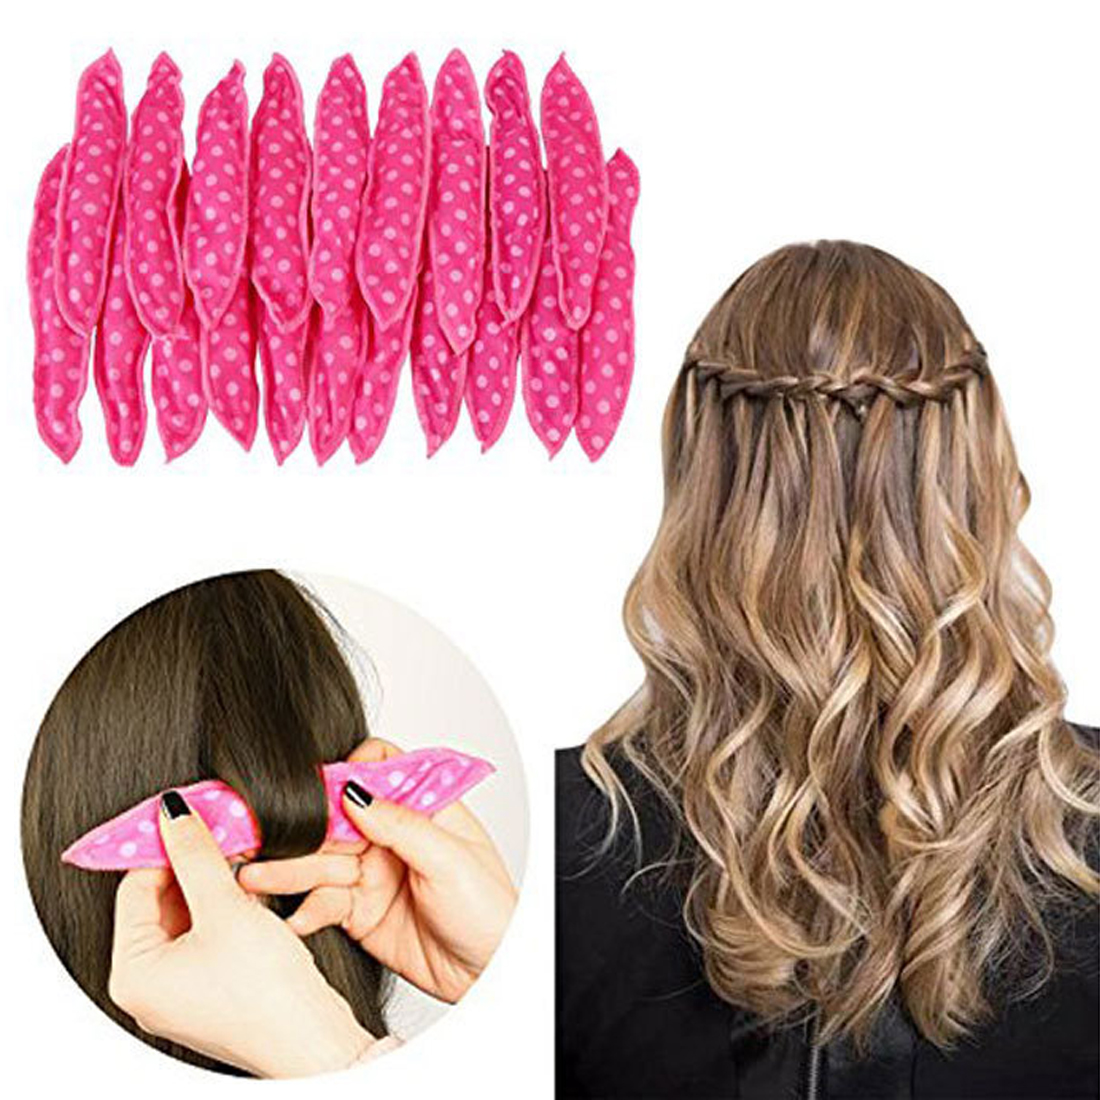 Cute Rabbit Ear Magic Sponge Pillow Soft Roller Hair Best Flexible Foam Sponge Hair Curlers DIY Styling Hair Rollers 6PCS/Set